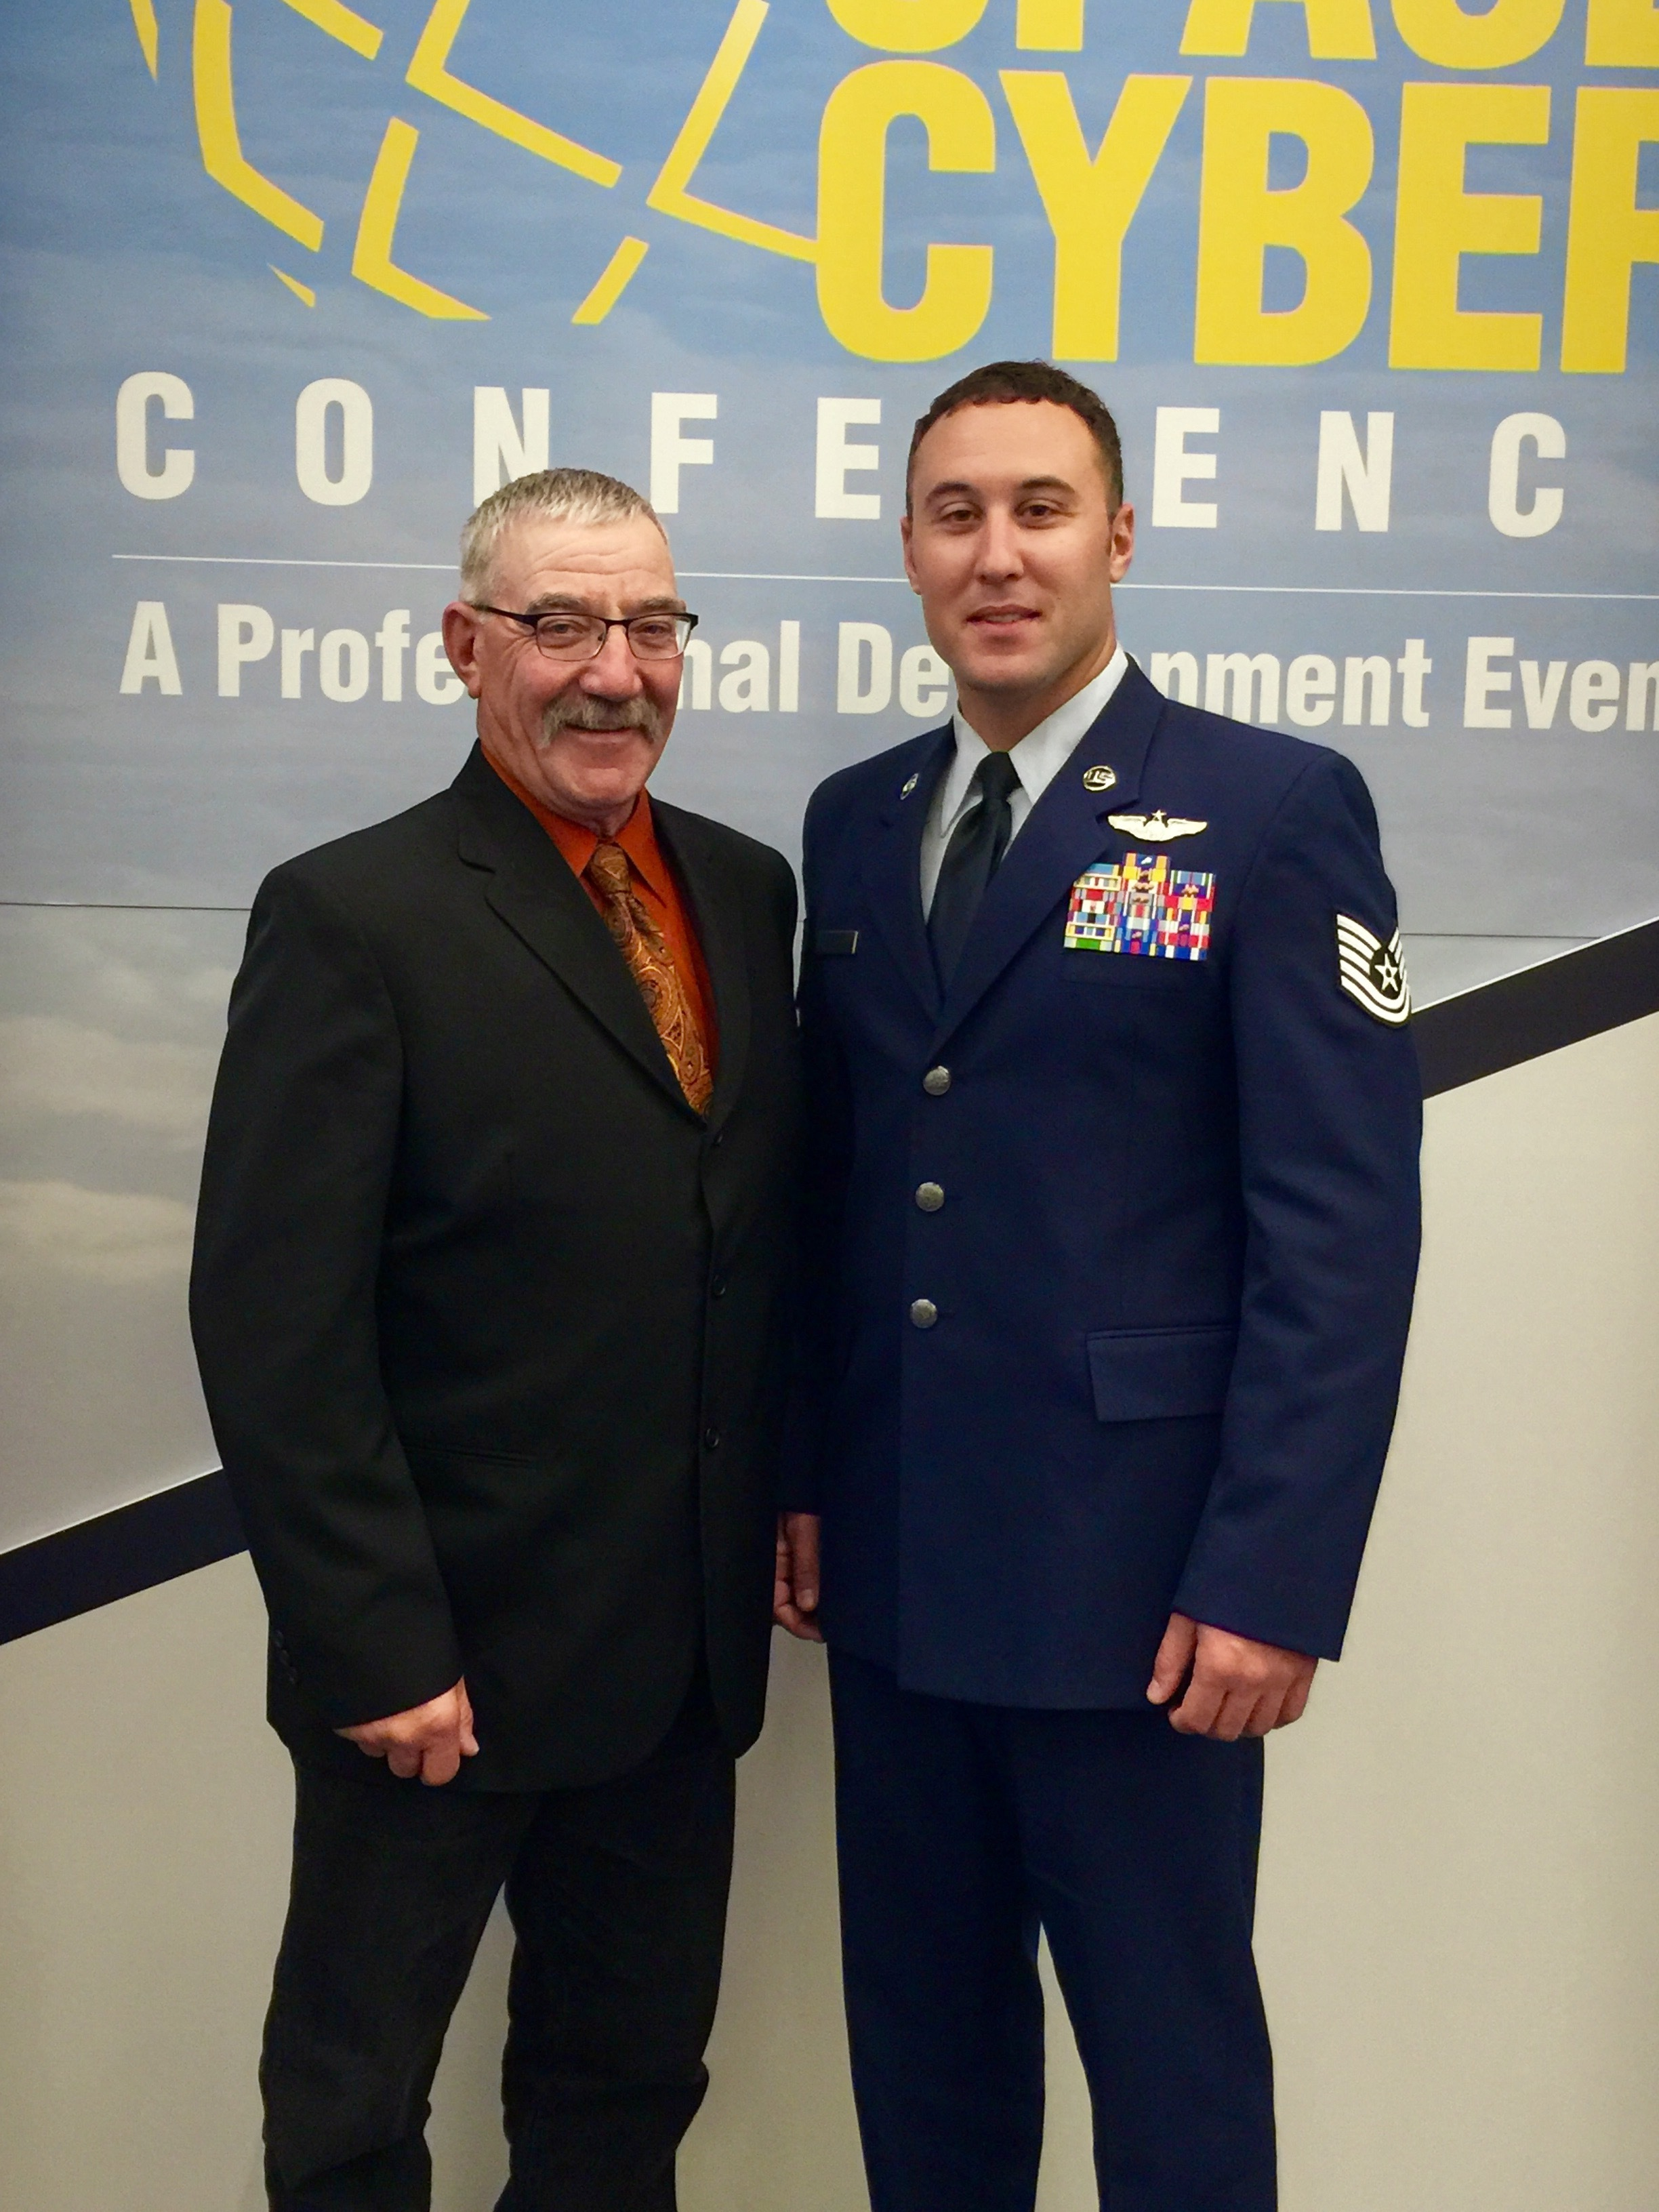 U.S. Air Force Tech. Sgt. Kade Bollinger poses for a photo with his father following his award recognition Sept. 18, 2017, at the Air Force Association National Convention in Washington D.C. Bollinger was a member of the crew that received the Air Force level award for the heroic actions following an aircraft mishap. (Courtesy photo)